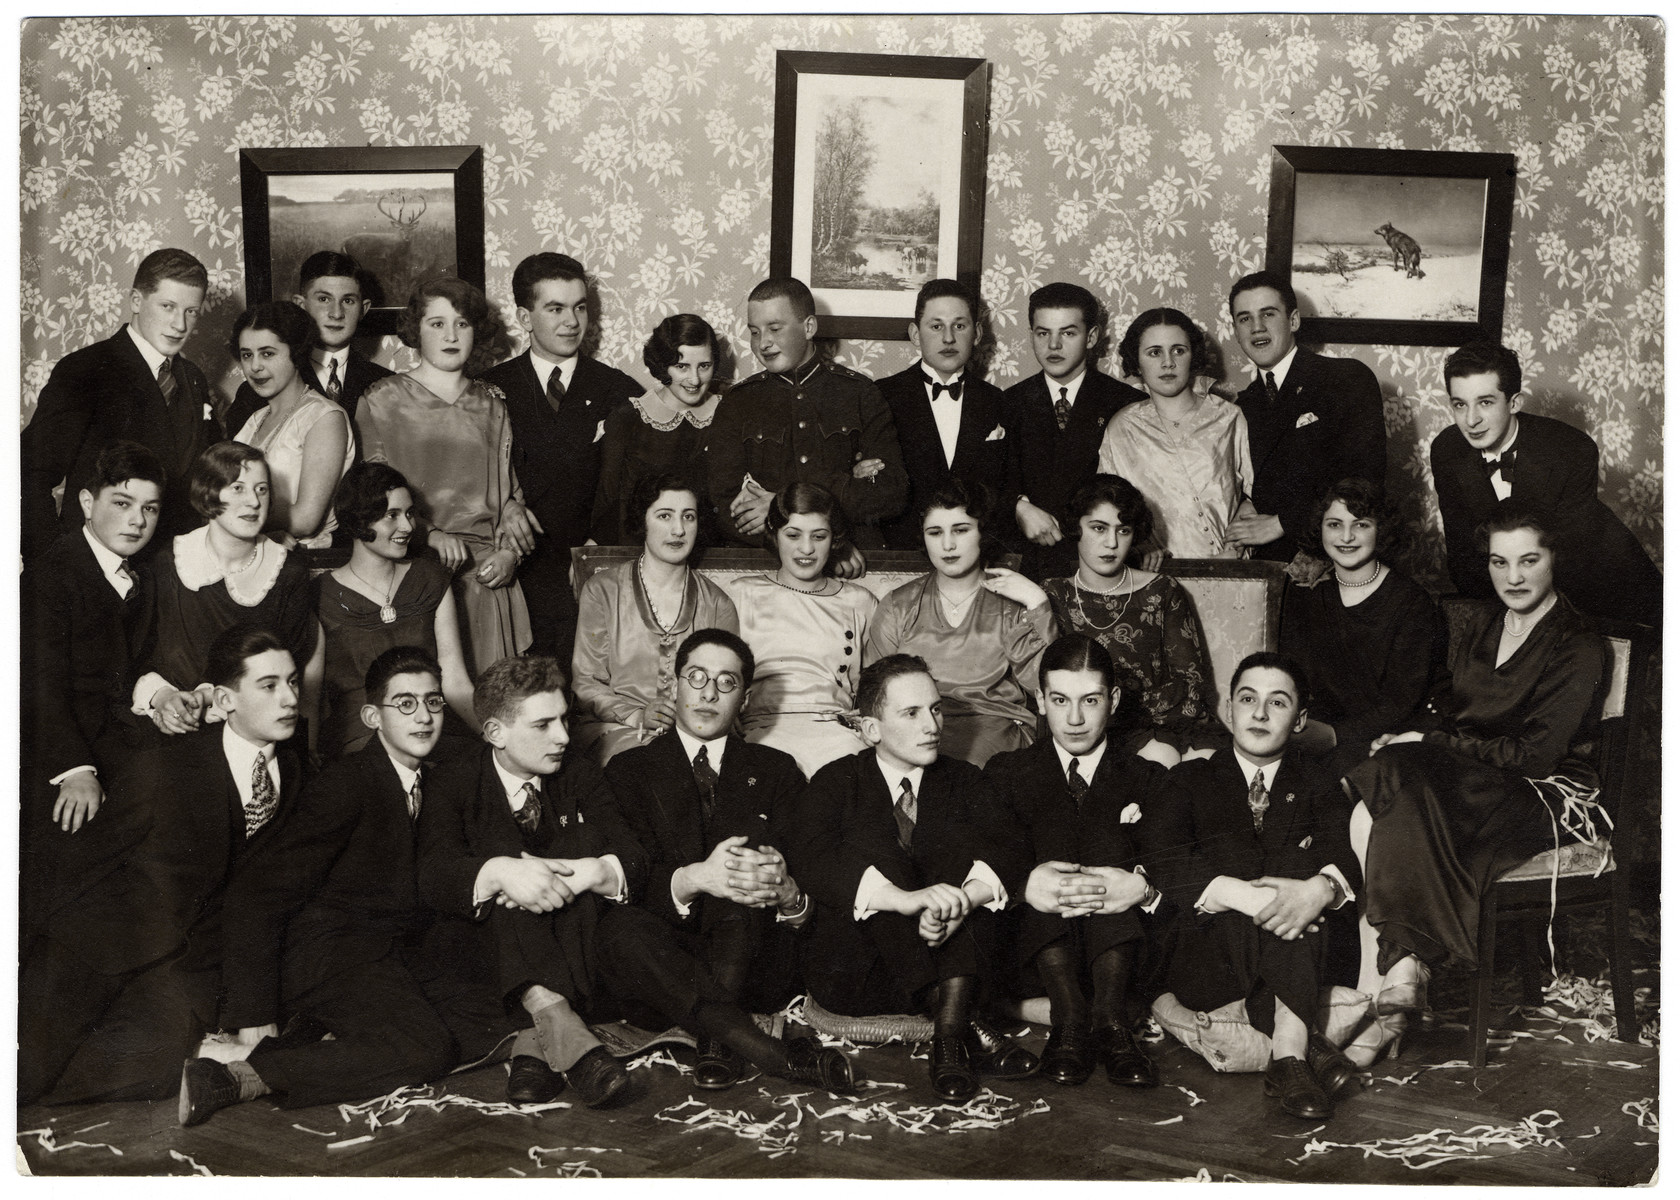 Prewar group portrait of young people celebrating the New Year in Riga, Lativa.